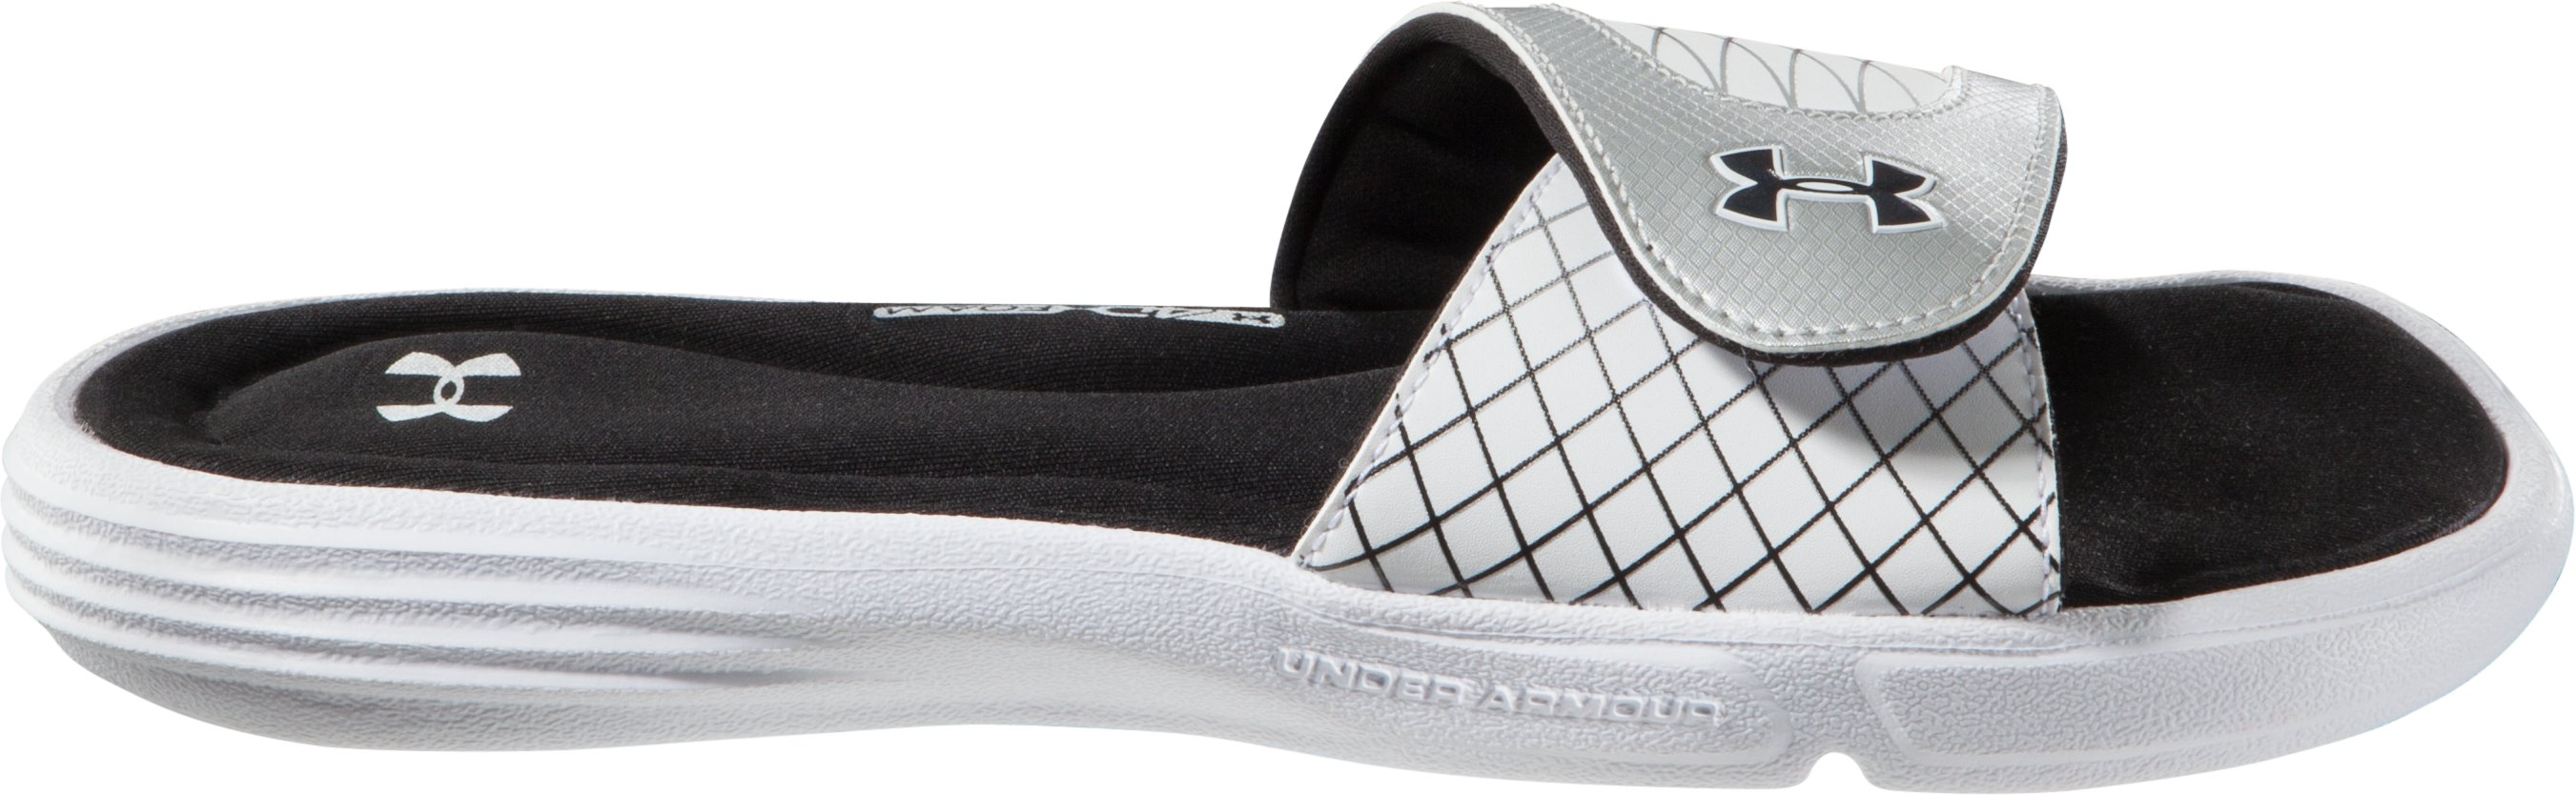 Women's Ignite V Slide, White, undefined